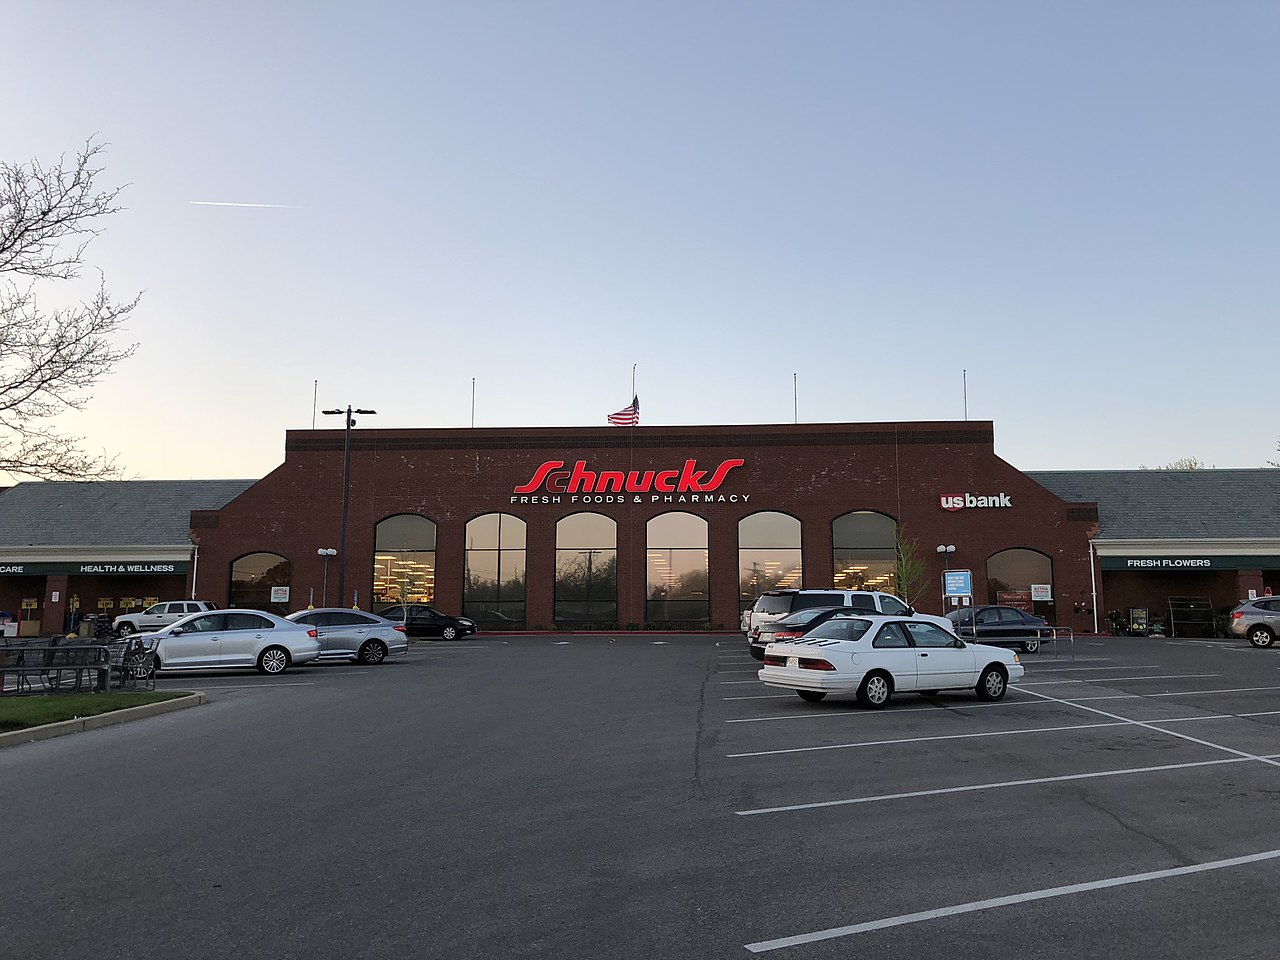 A picture of a Schnucks market in Kirkwood, Mo. at dusk.